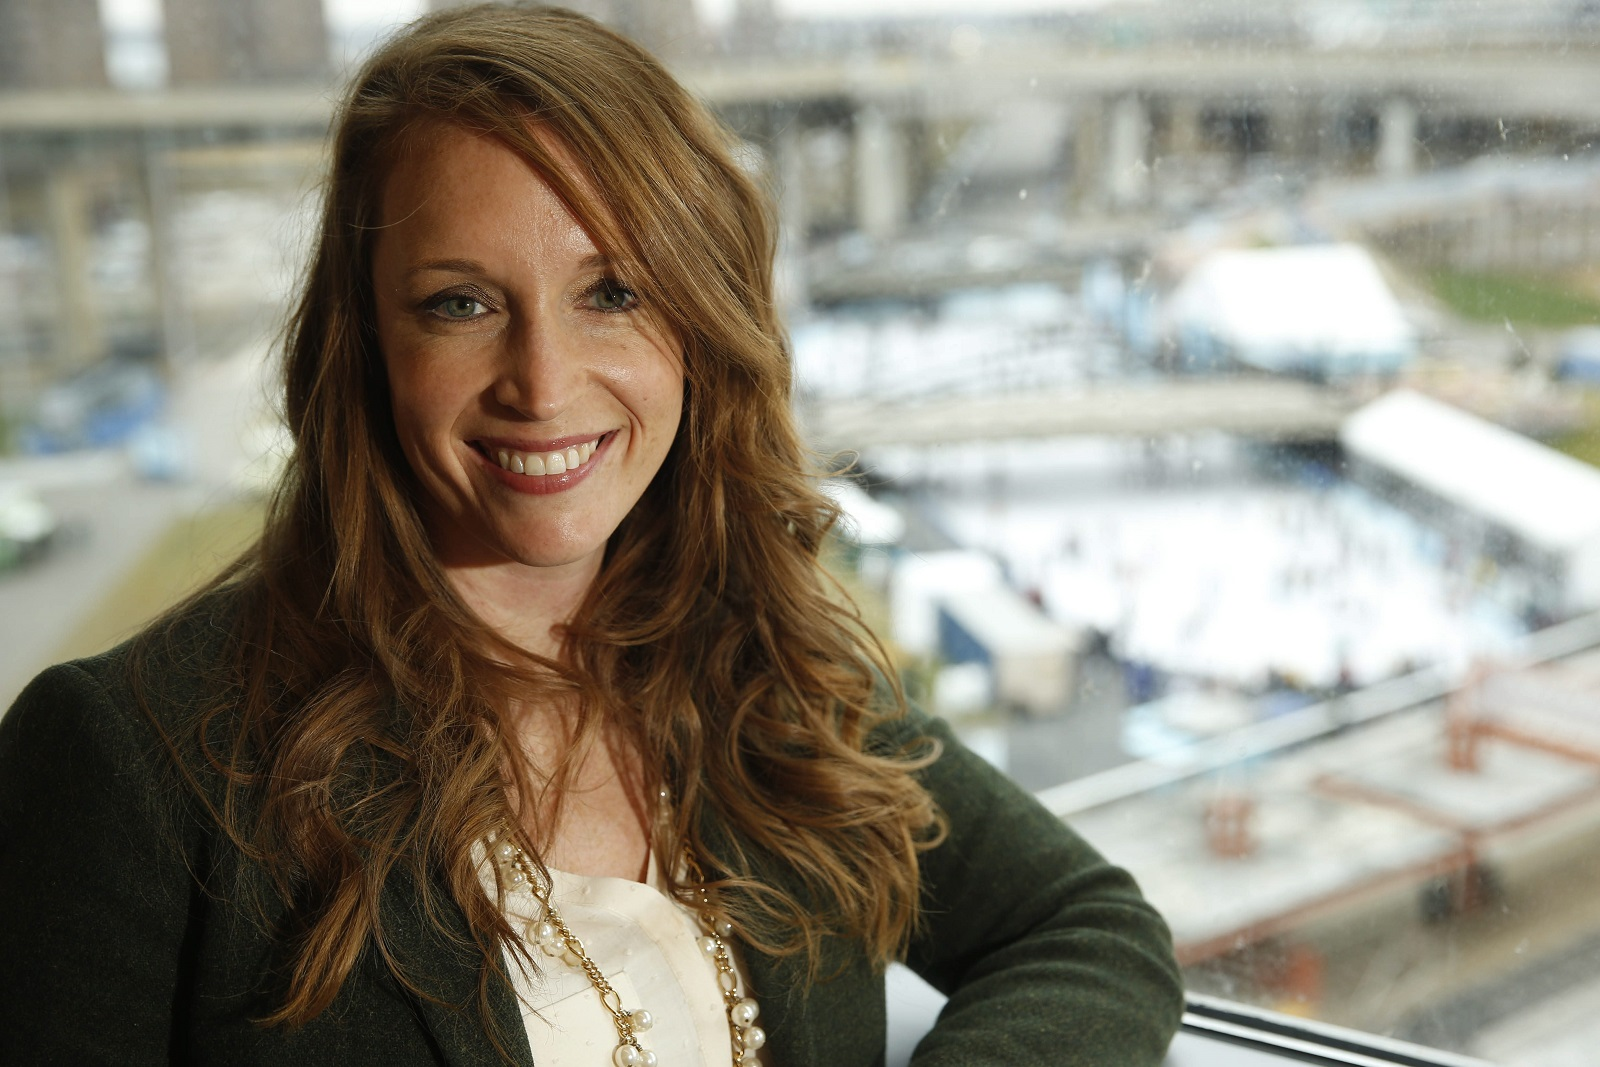 After more than a decade as a Republican operative in Washington, Andrea Bozek, 33, has returned home to work in public relations and crisis communications. (Derek Gee/Buffalo News)